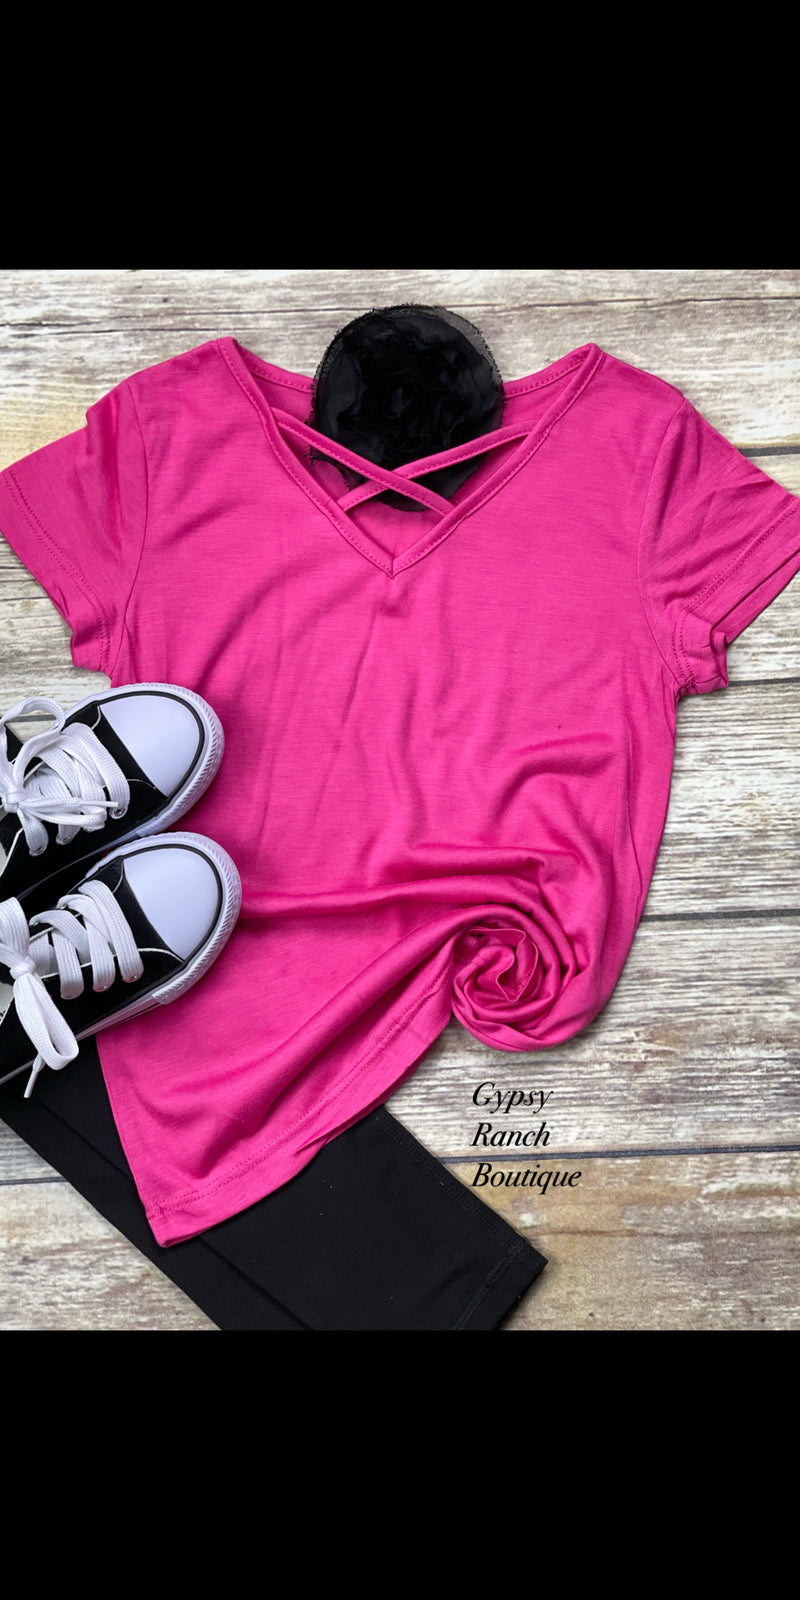 Kids Pink Criss Cross Top